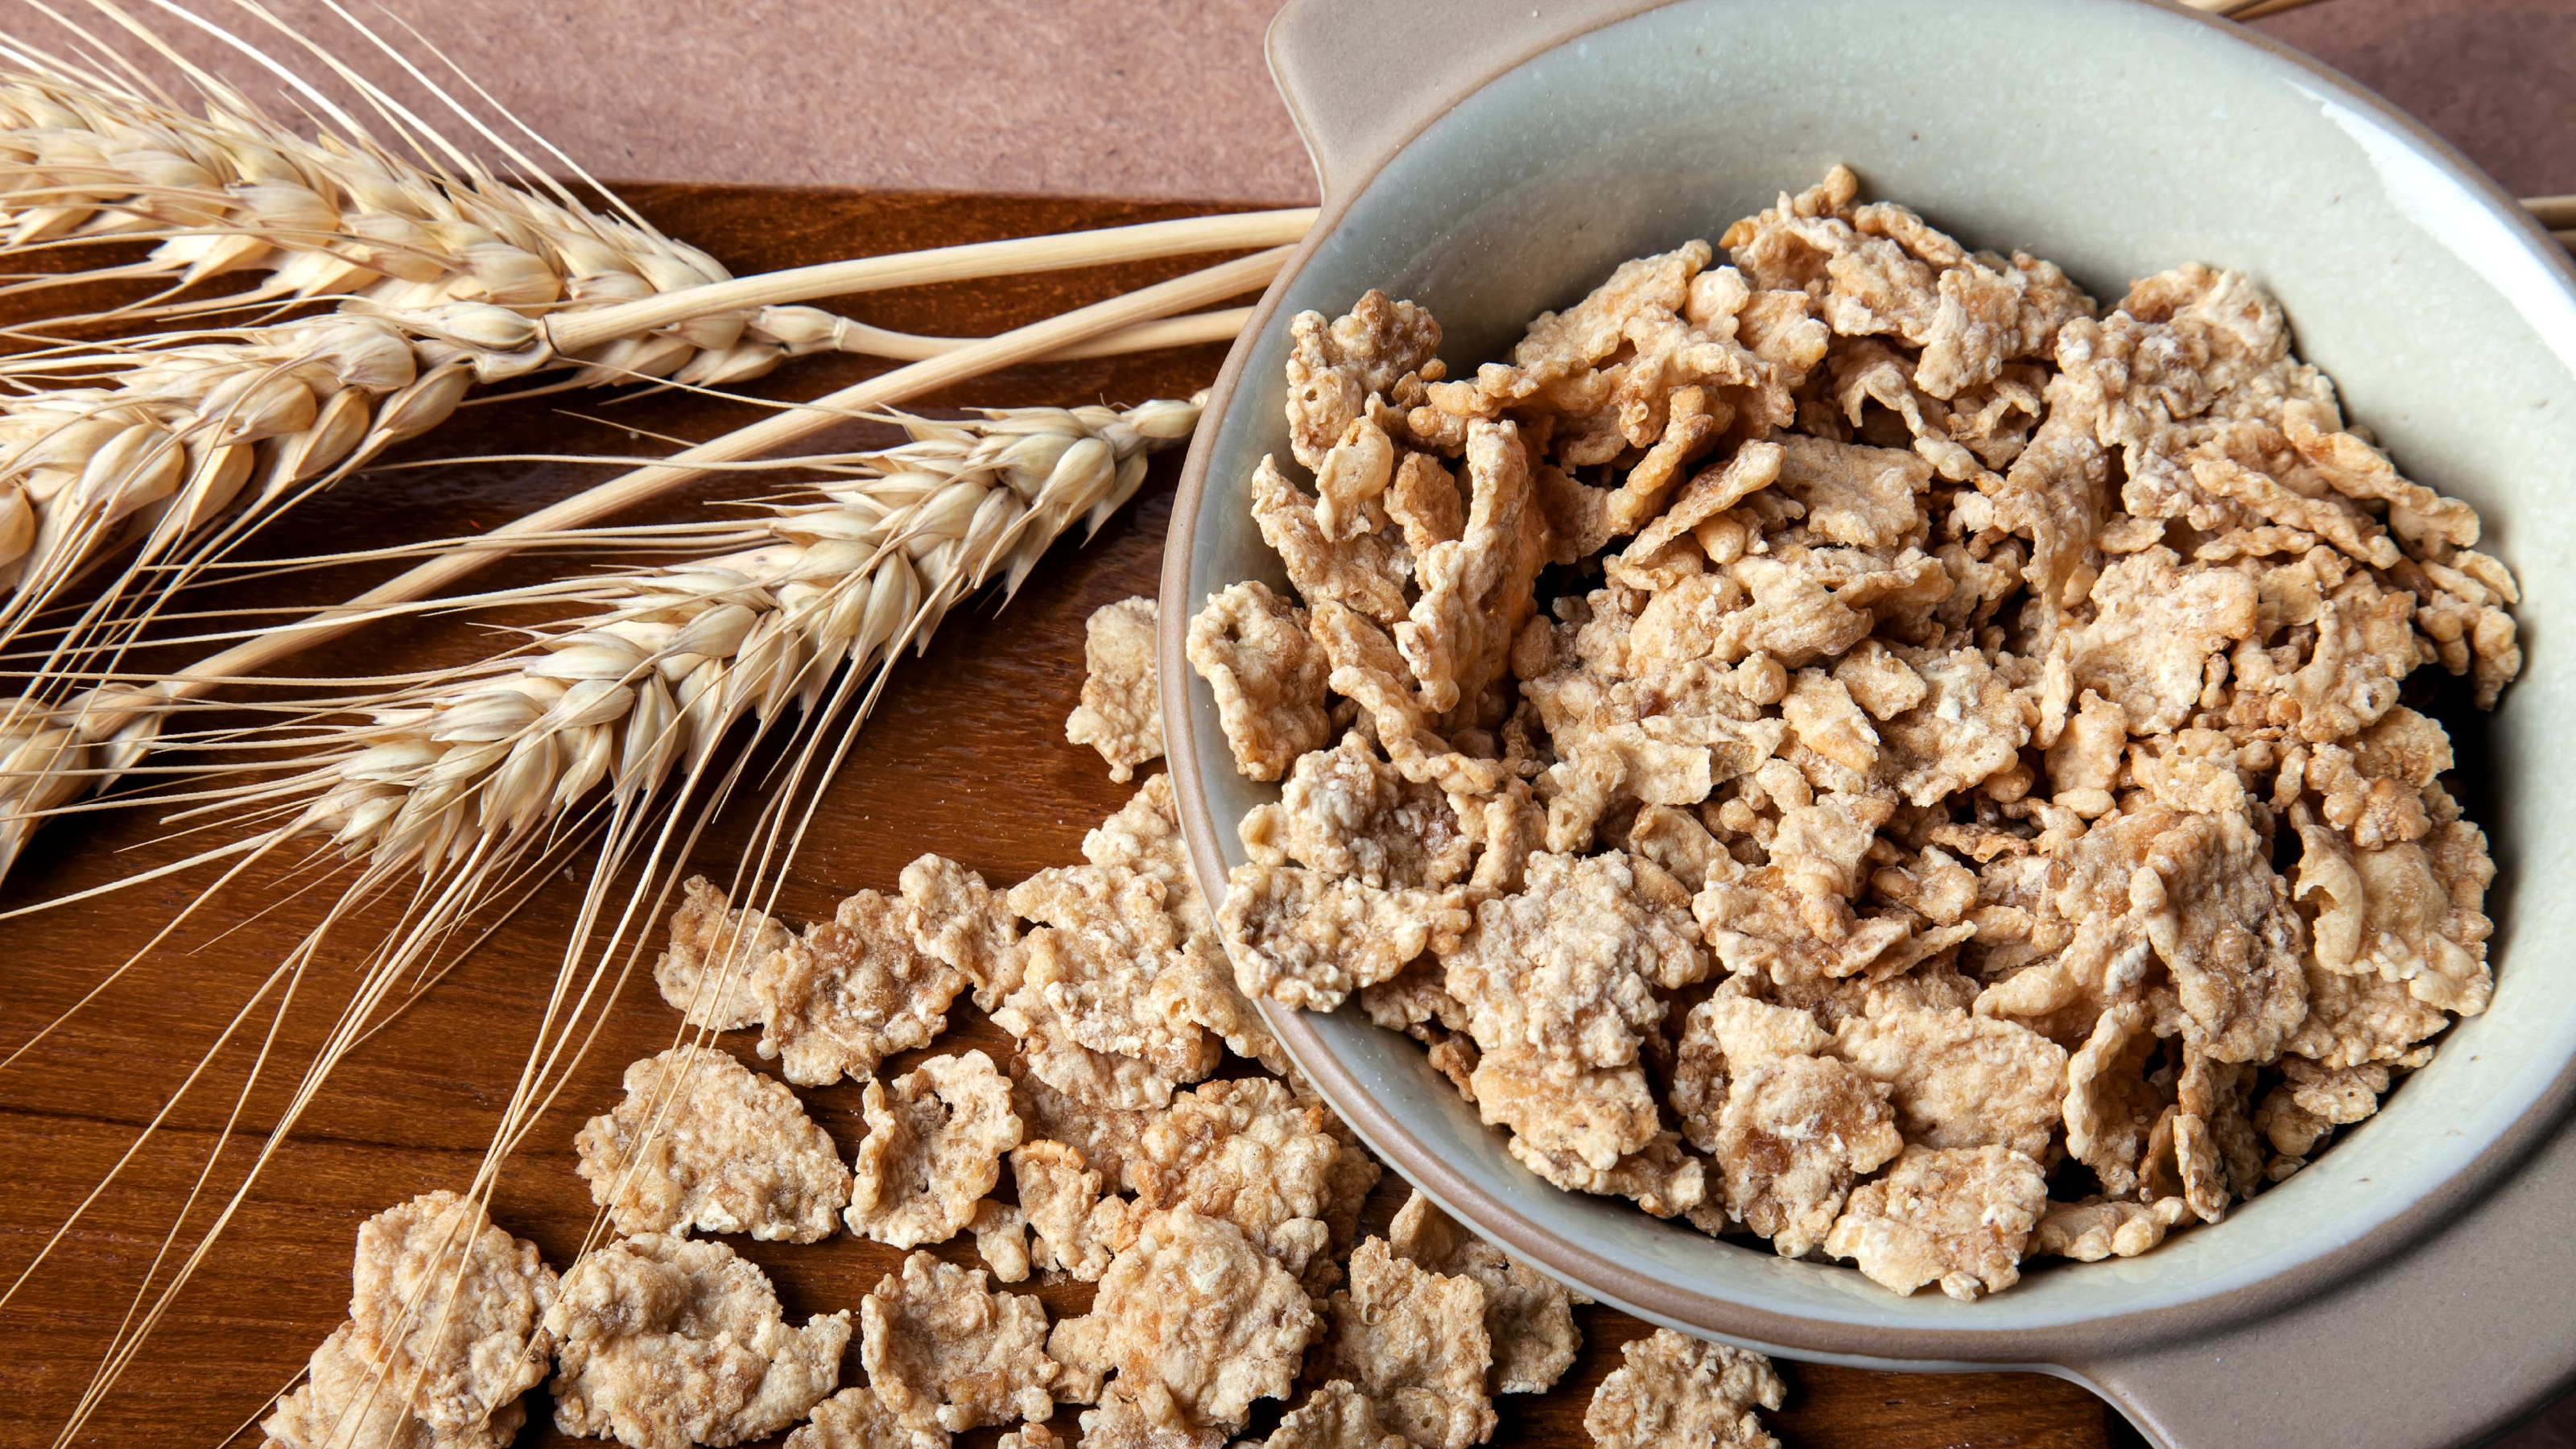 Breakfast Cereal Manufacturing Solutions | Bühler Group